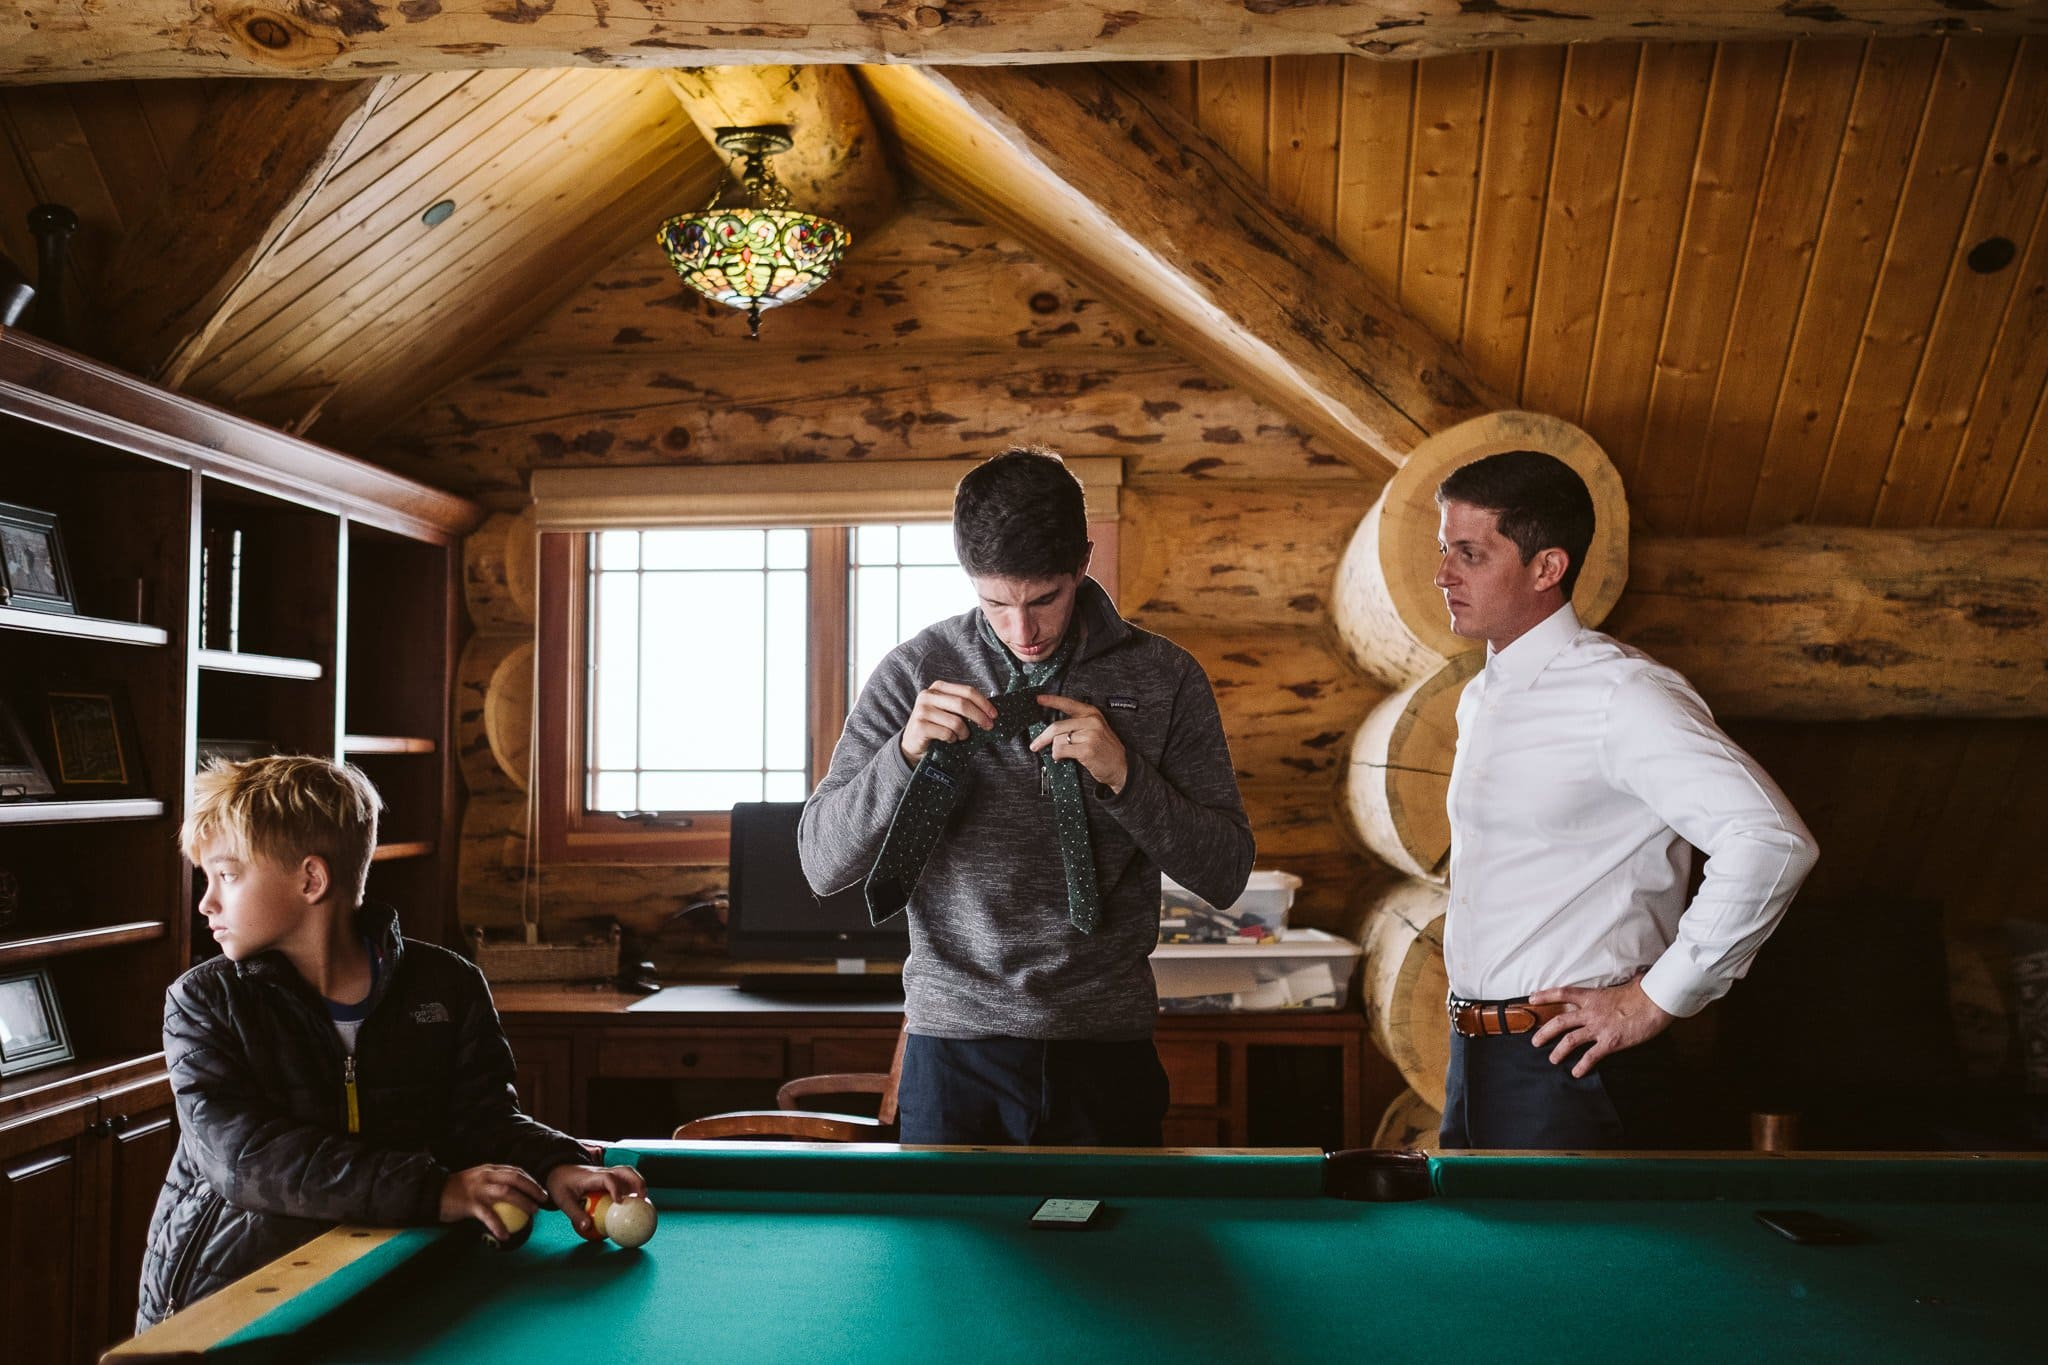 Groom getting ready for elopement in log mountain home in Steamboat Springs